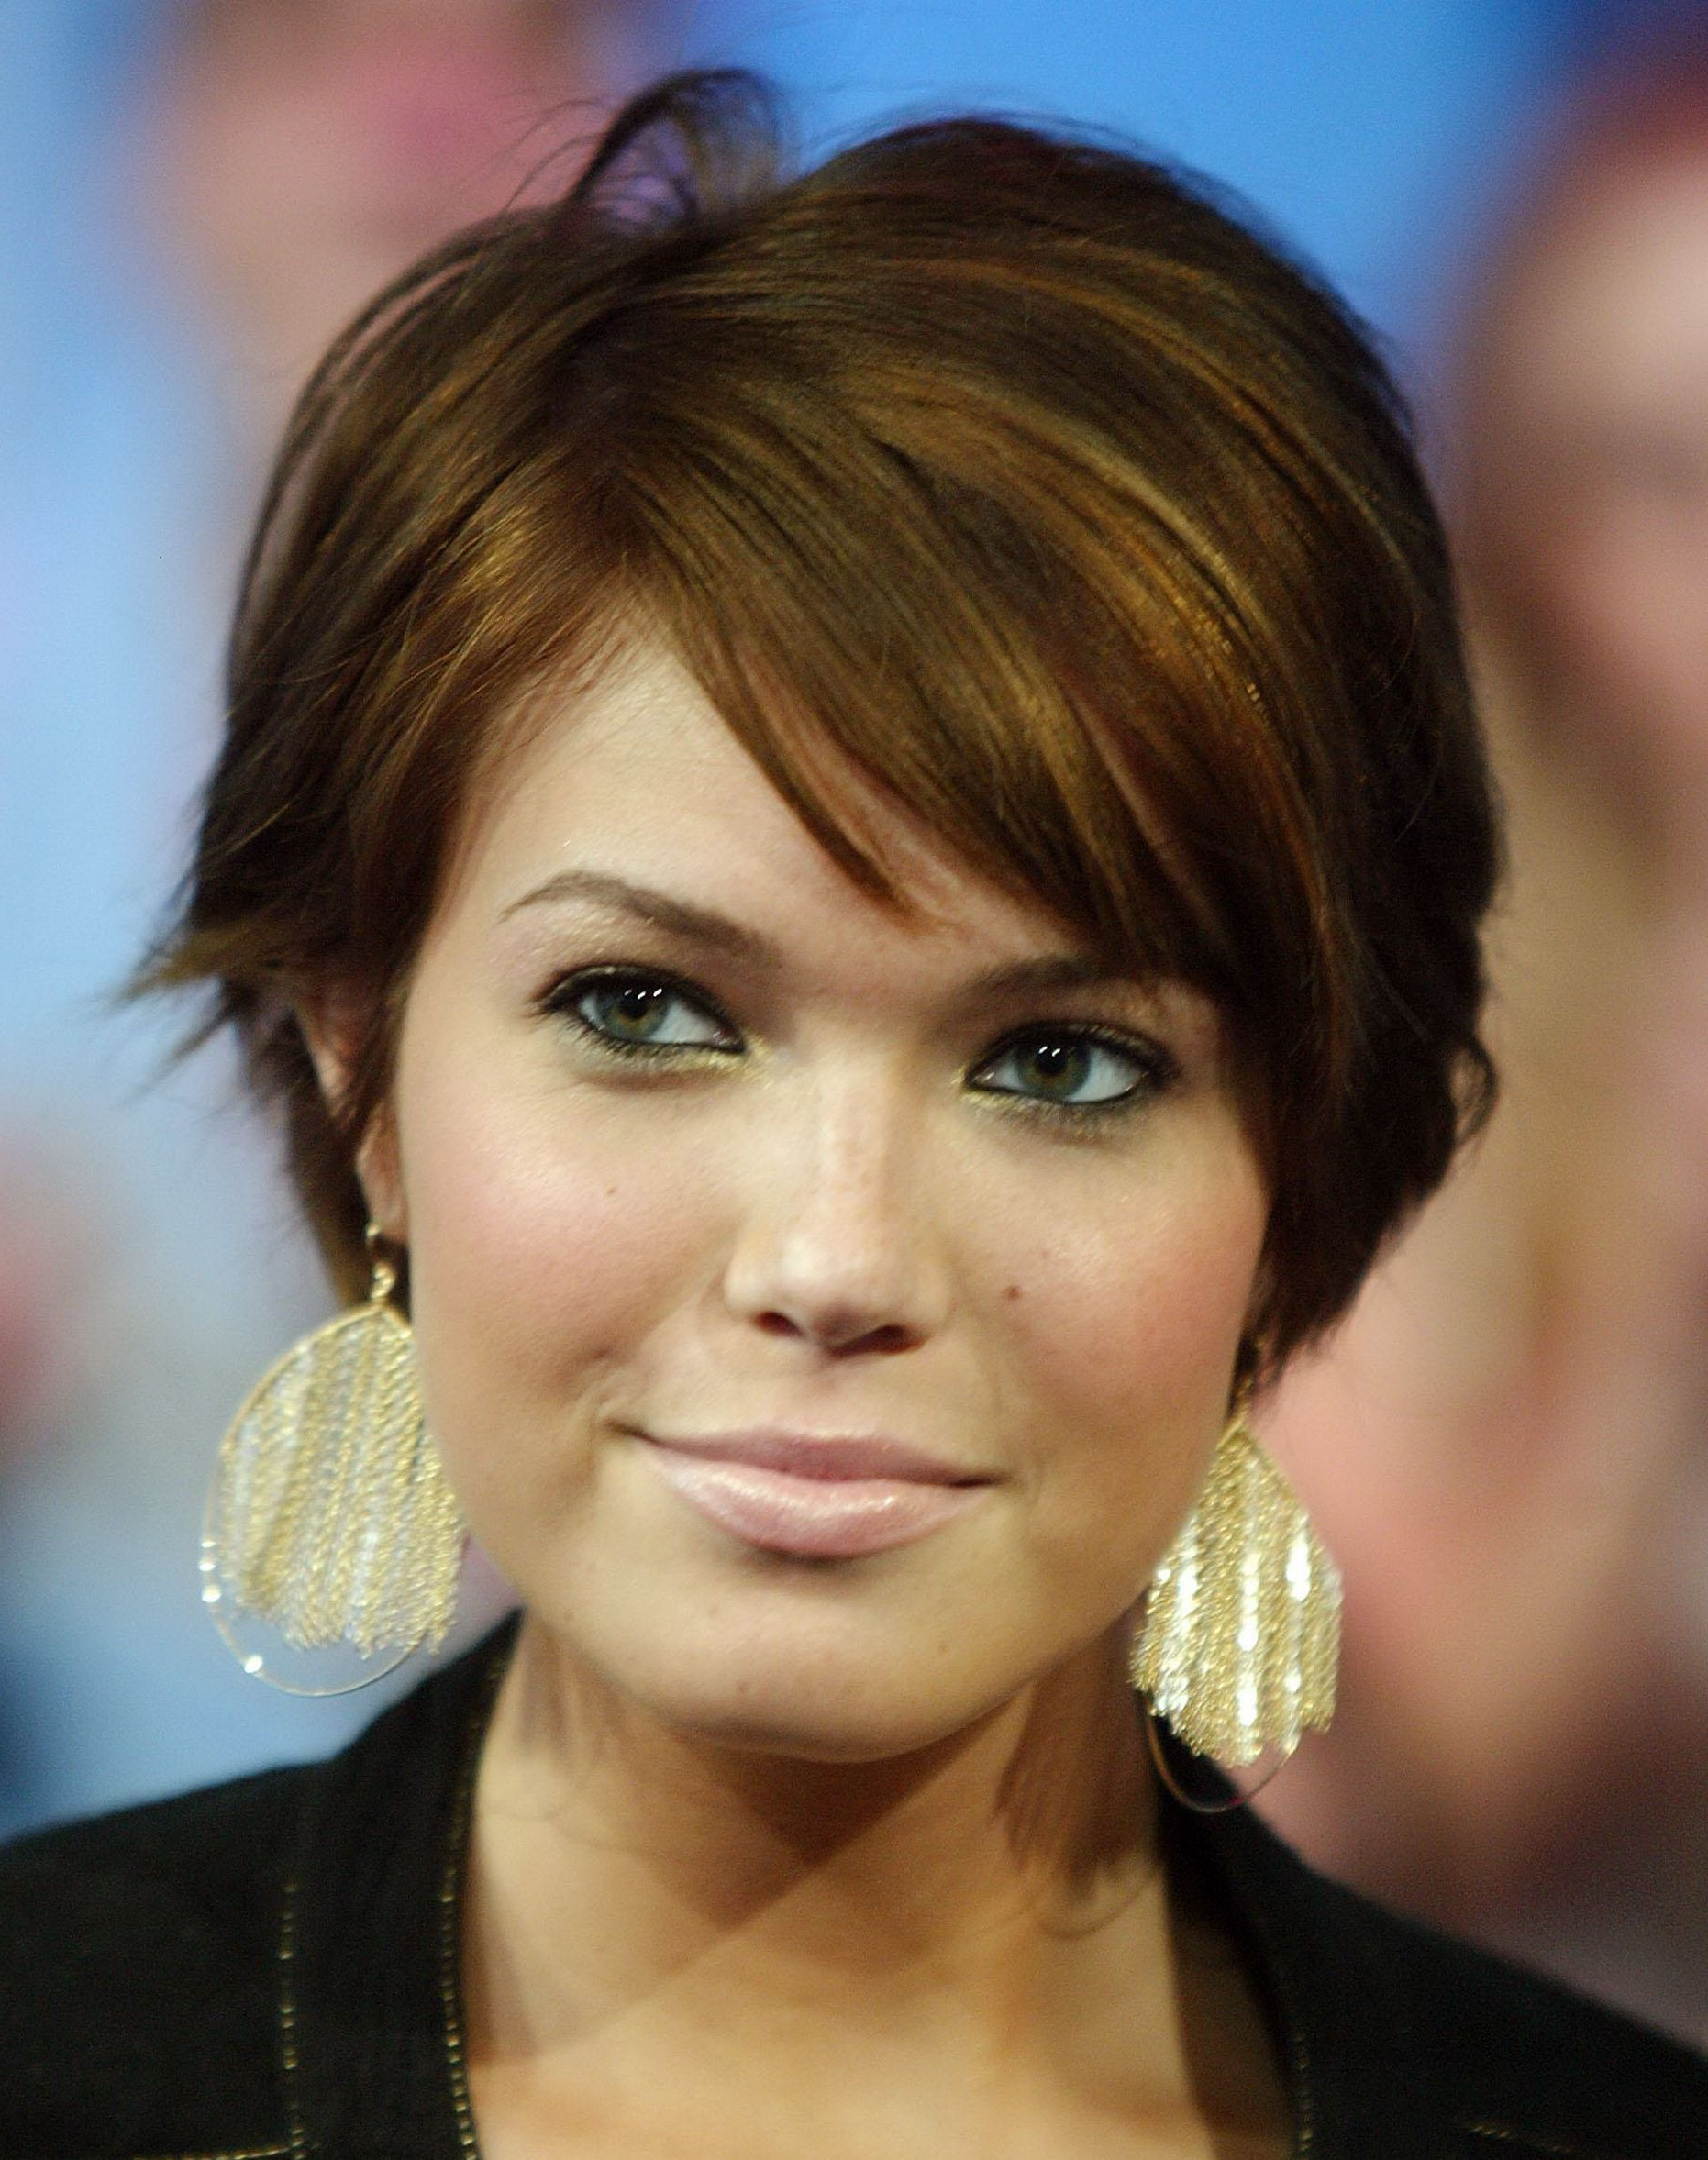 Hairstyles For Older Women With Long Faces Short Hairstyles For Pertaining To Short Haircuts For Long Faces (View 17 of 25)